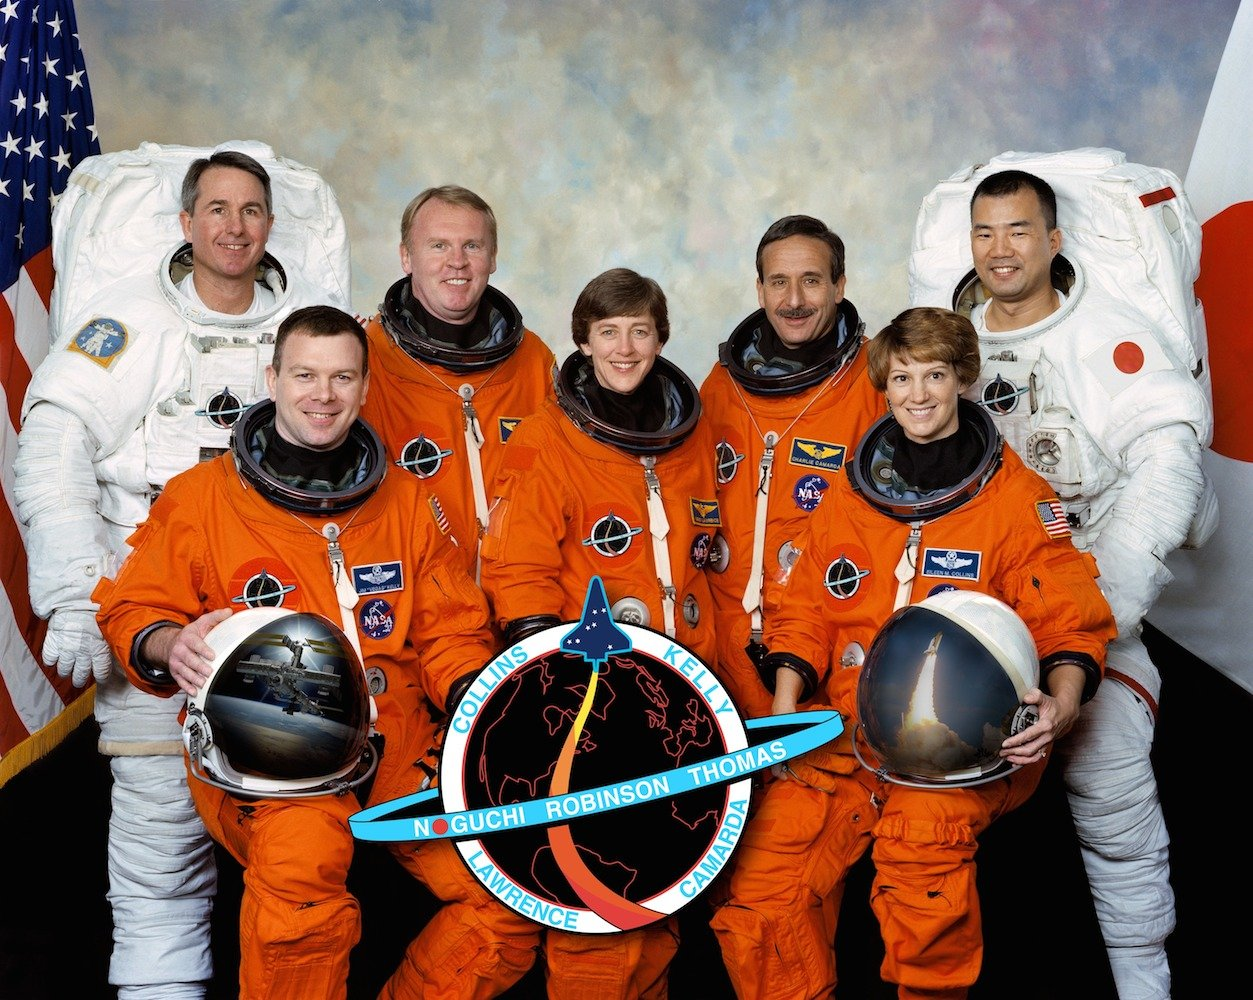 The team of STS-114, sent to space by NASA in July 2005